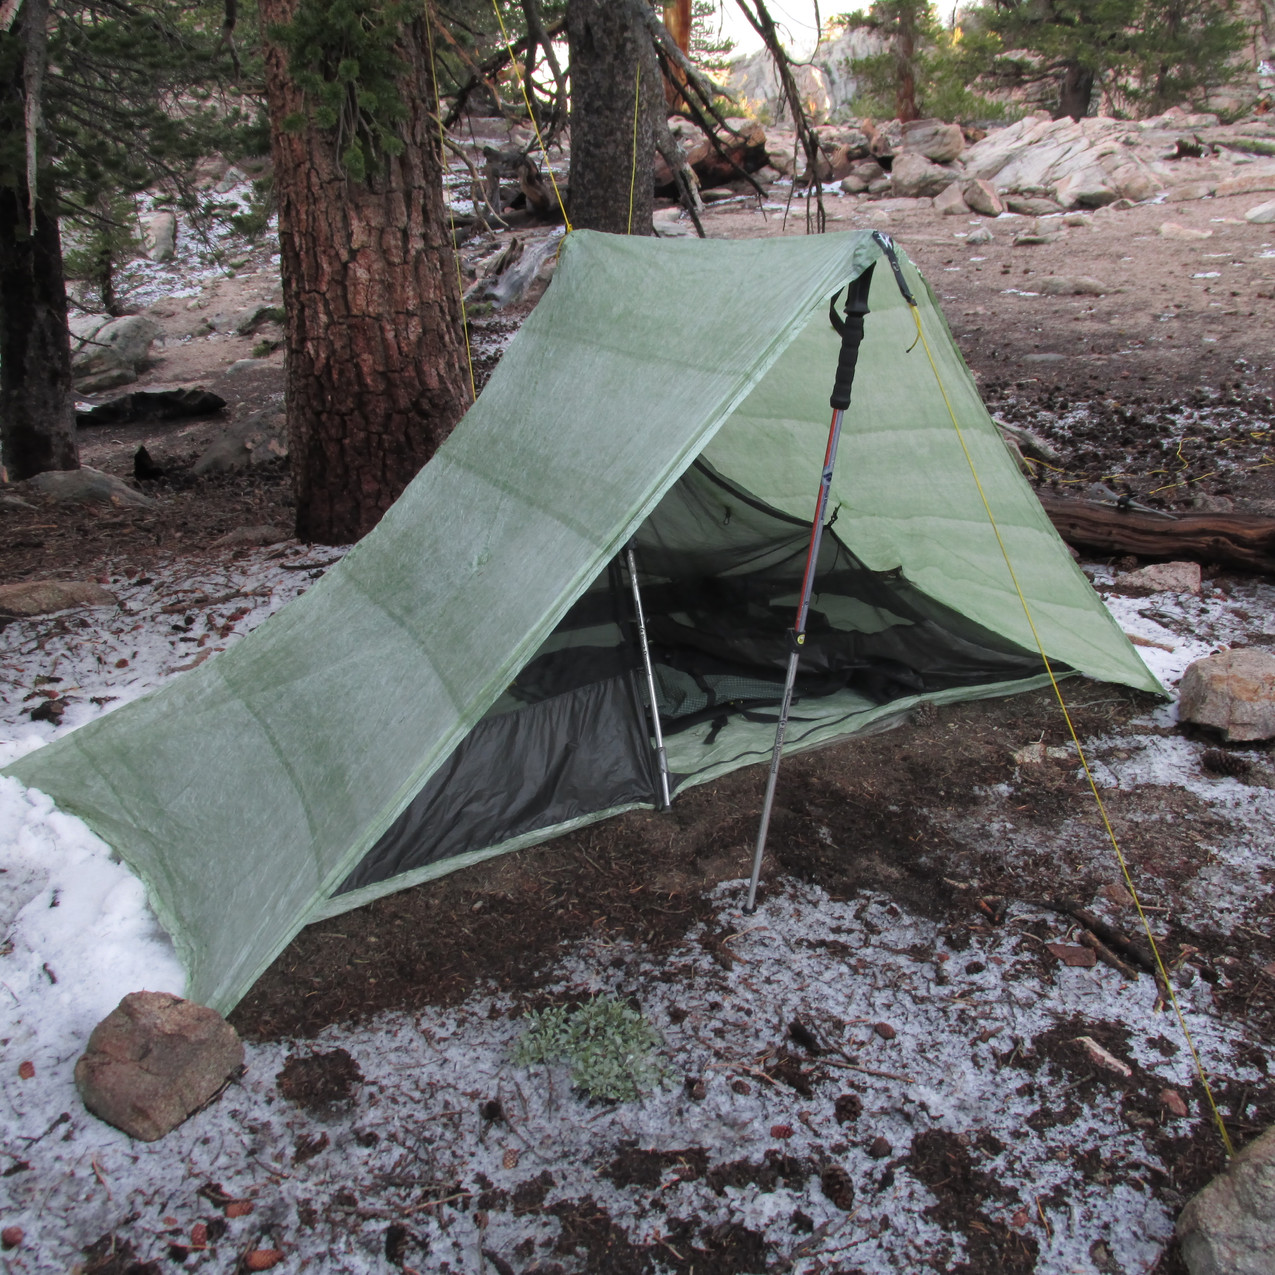 My tent survived three hail storms in one night.  It kind of looks like snow on the ground, but those are hail stones.